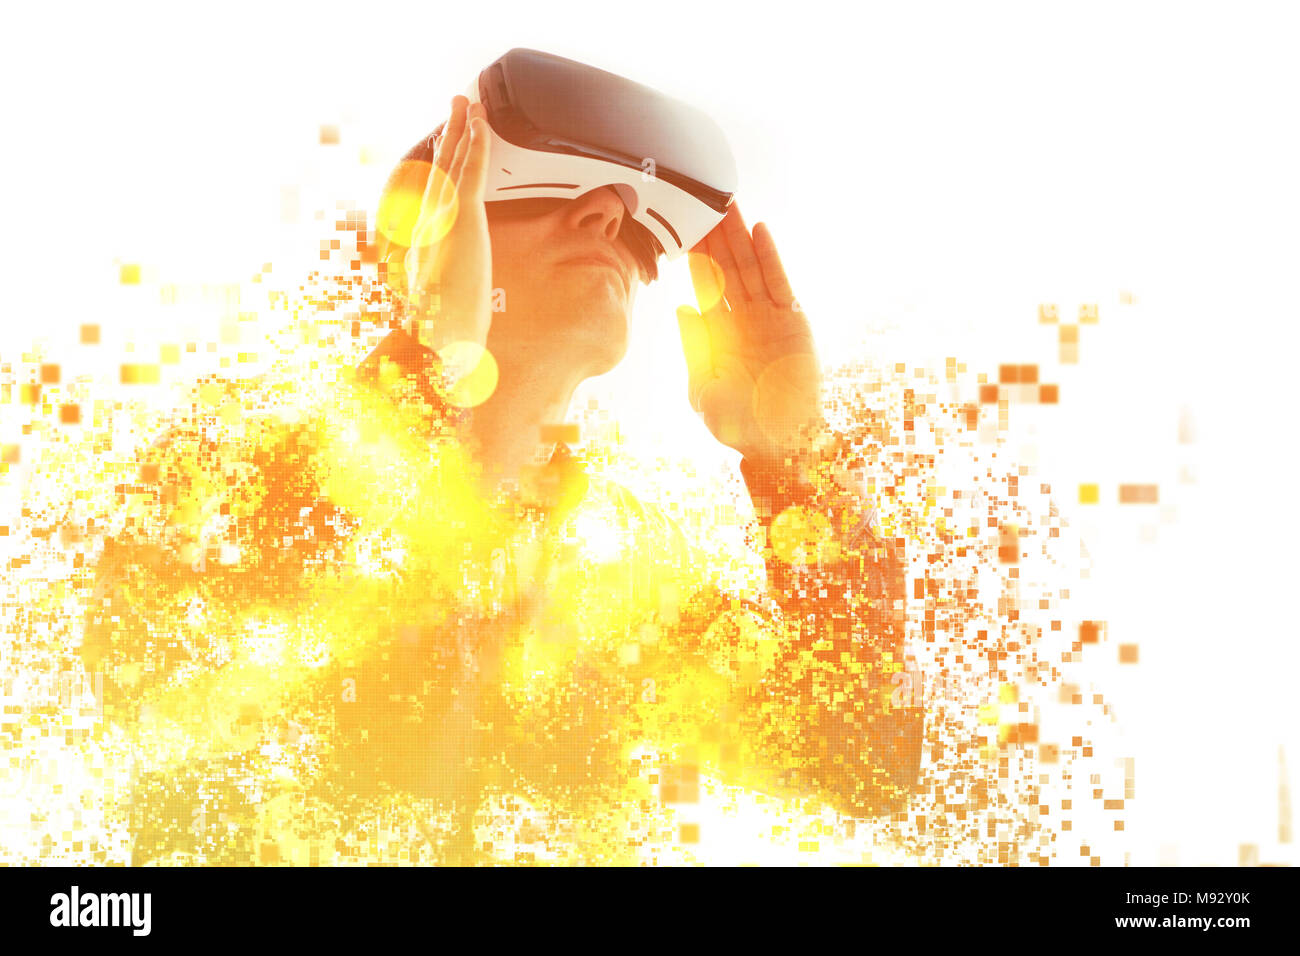 A person in virtual glasses flies to pixels. The man with glasses of virtual reality. Future technology concept. Modern imaging technology. Fragmented - Stock Image